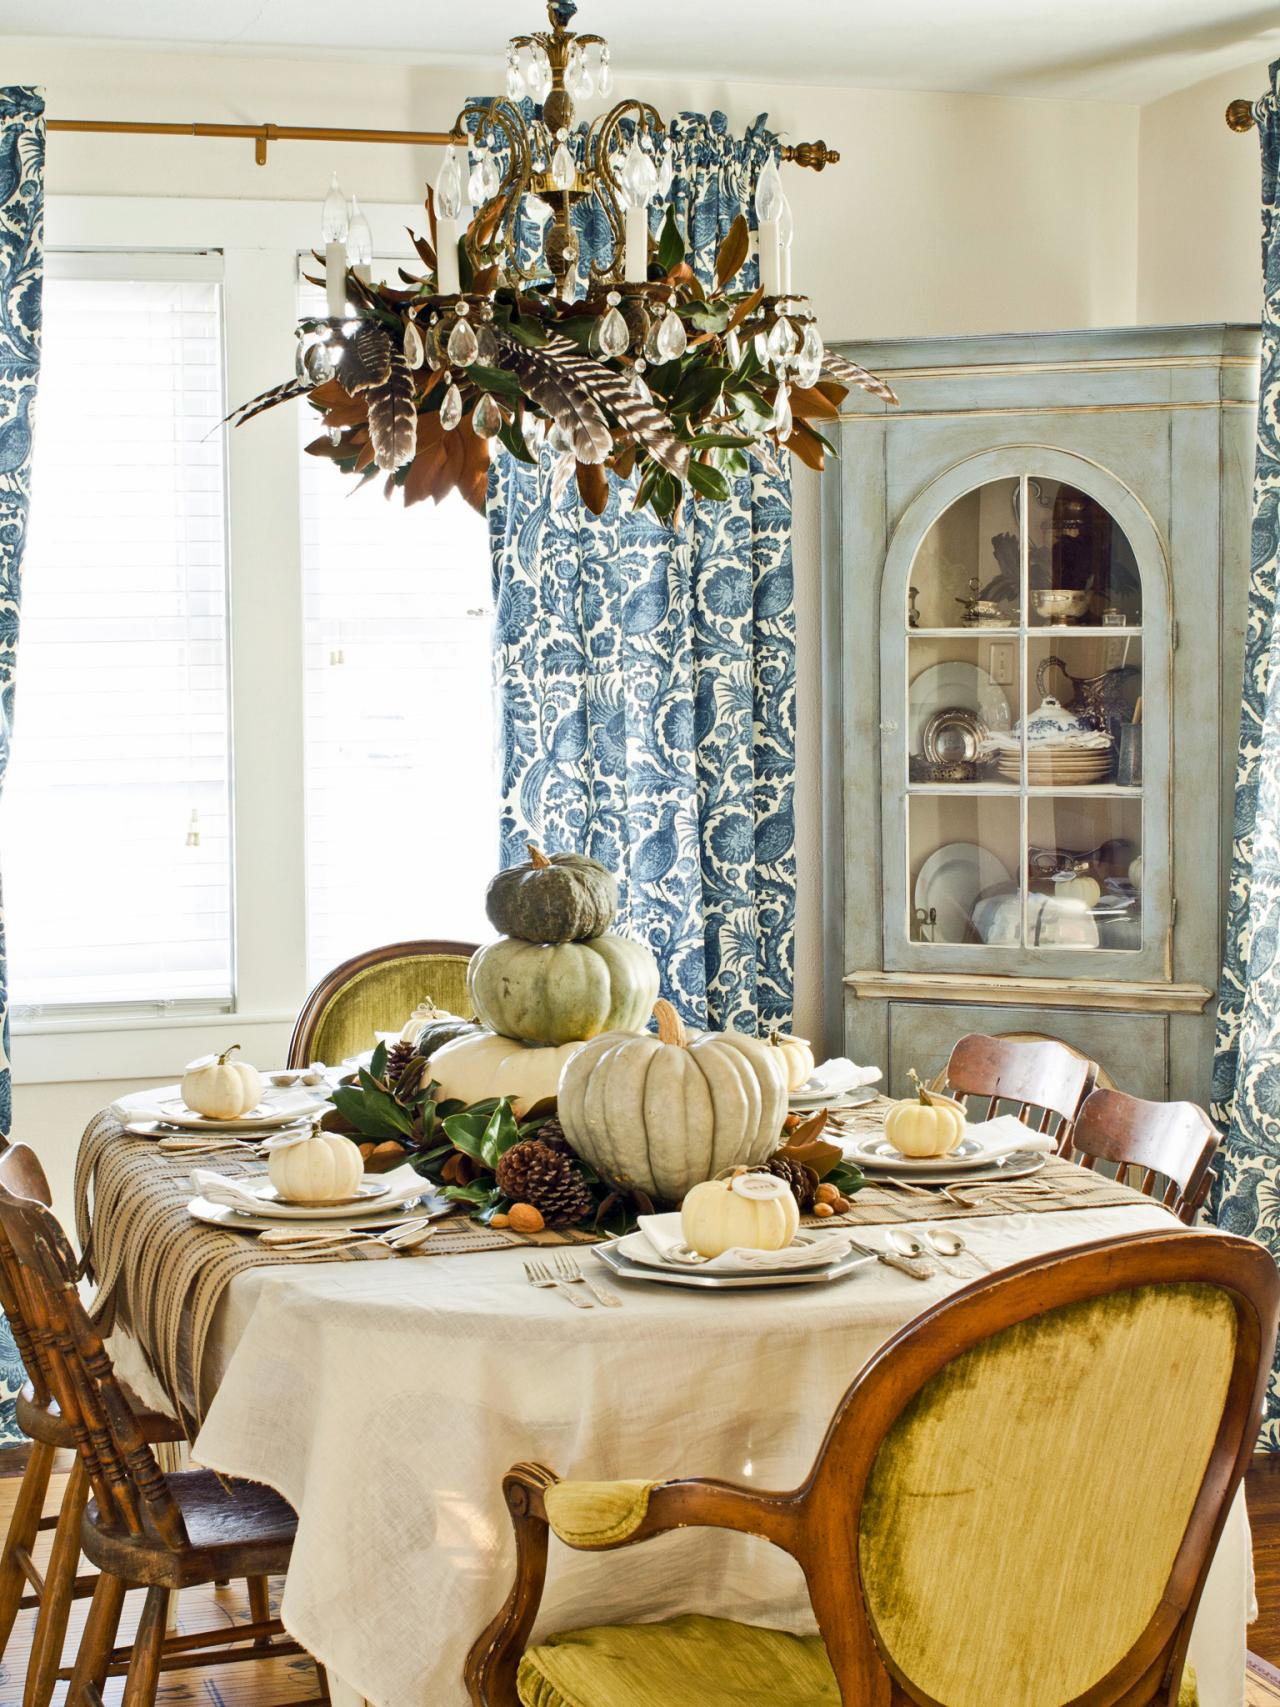 13 rustic thanksgiving table setting ideas entertaining - Dining table setting ideas ...